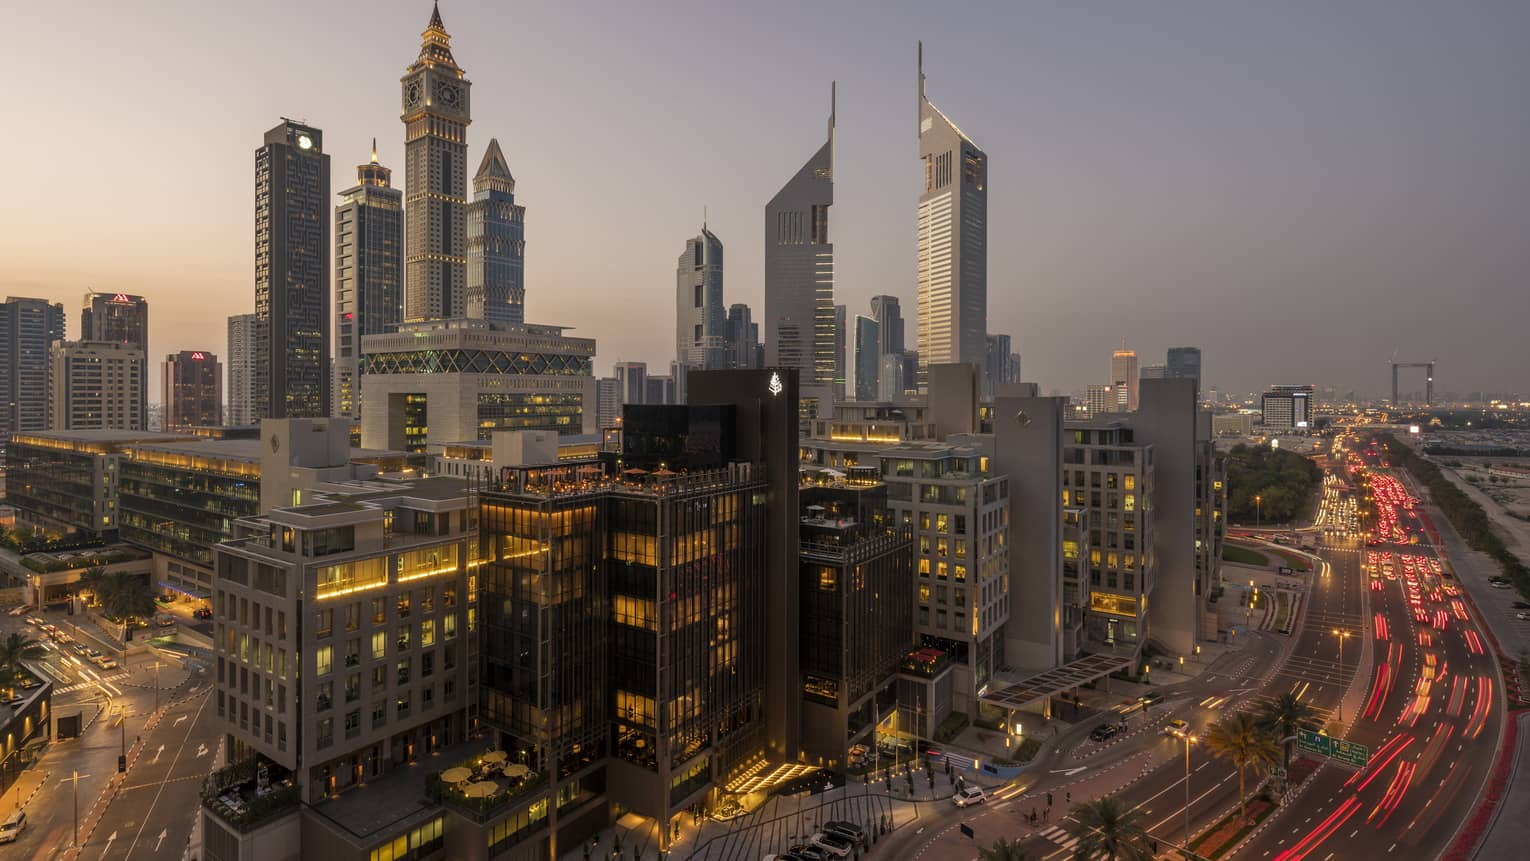 Aerial view of Dubai city skyline, road, lights around Four Seasons International Financial Centre hotel at sunset